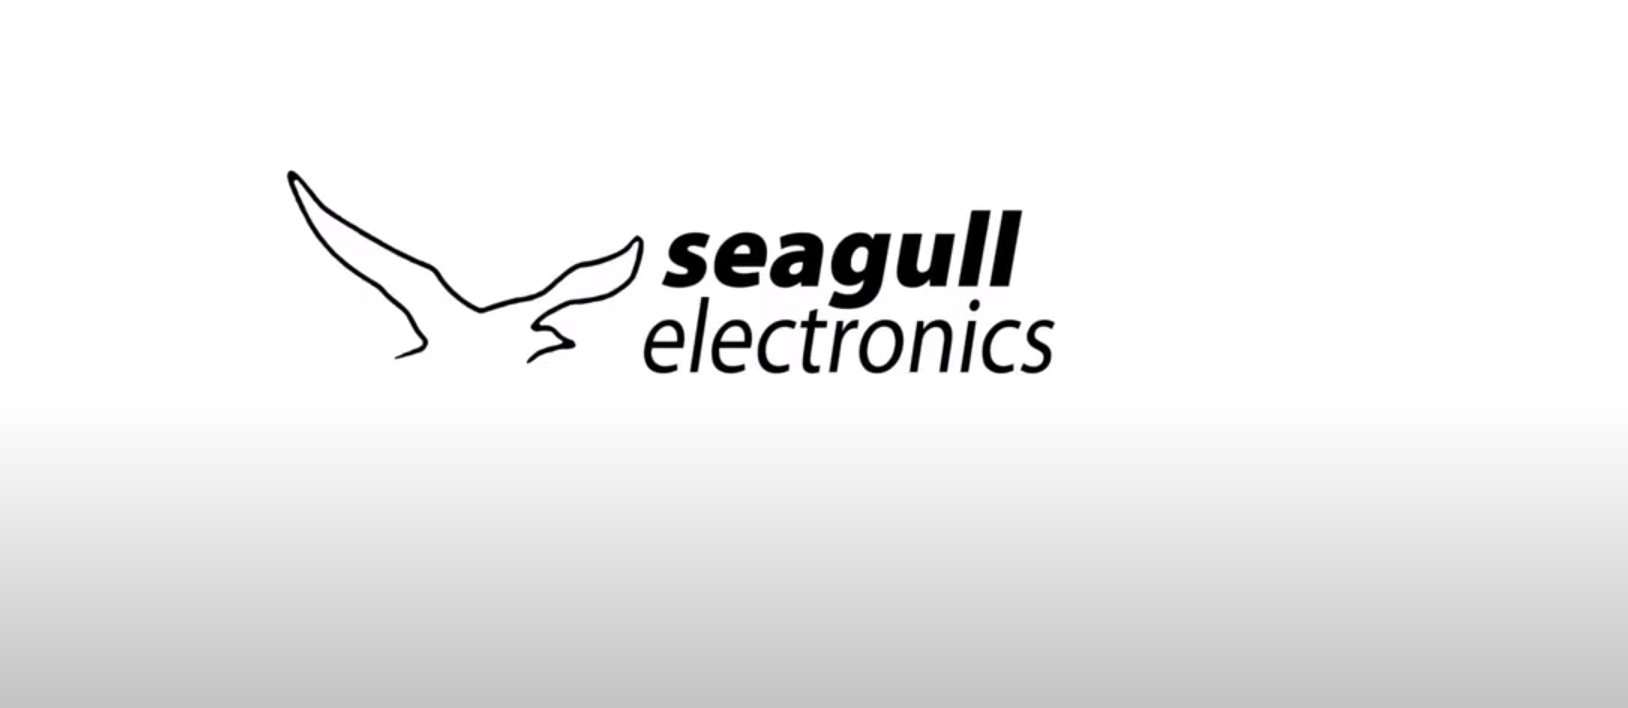 Seagull Electronics Highlights Key Home Automation Solutions